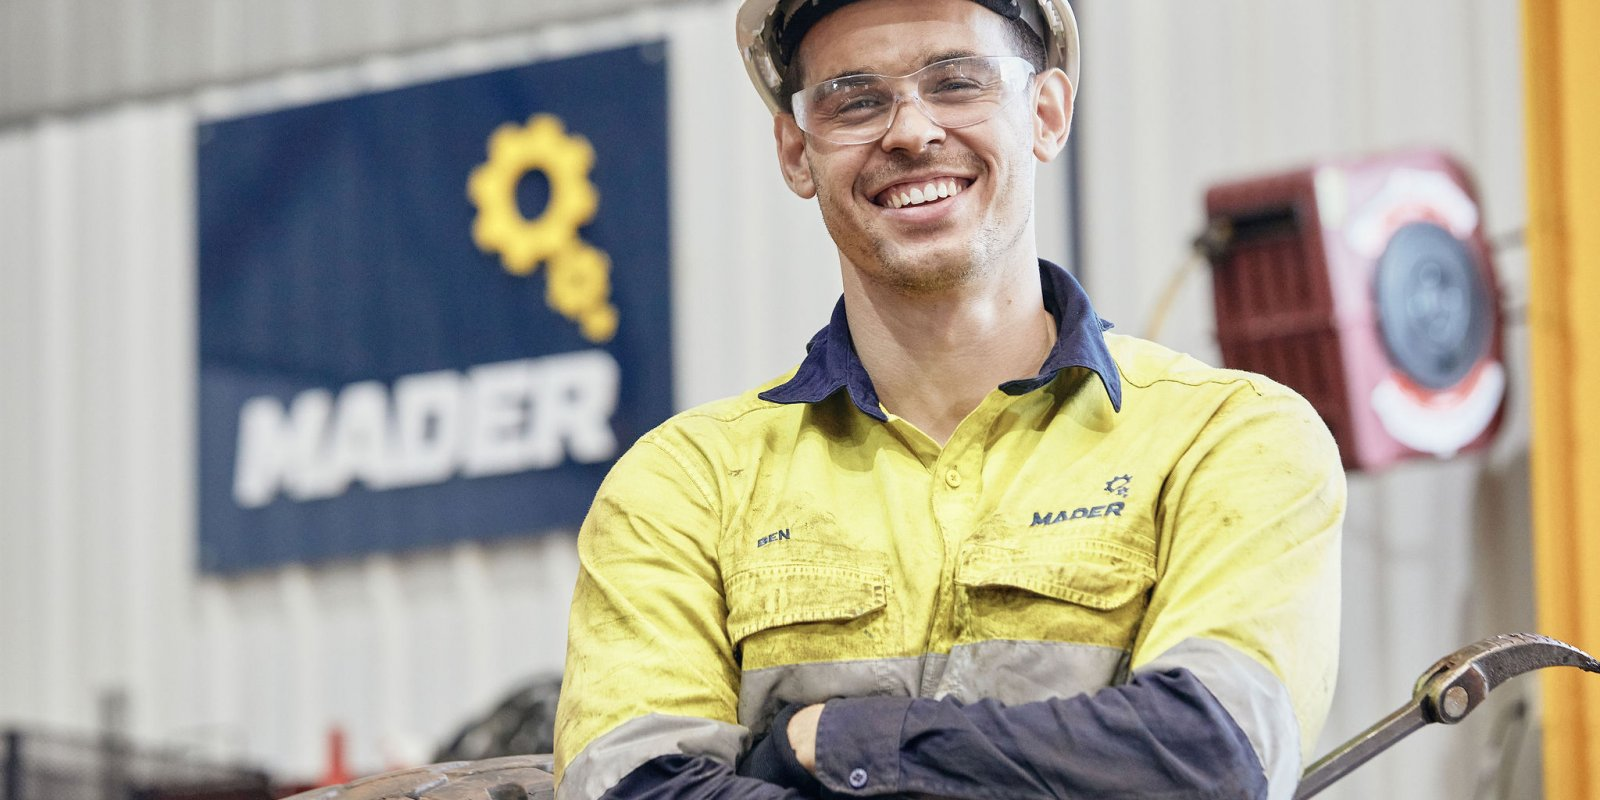 Mader Group awarded new scope of work